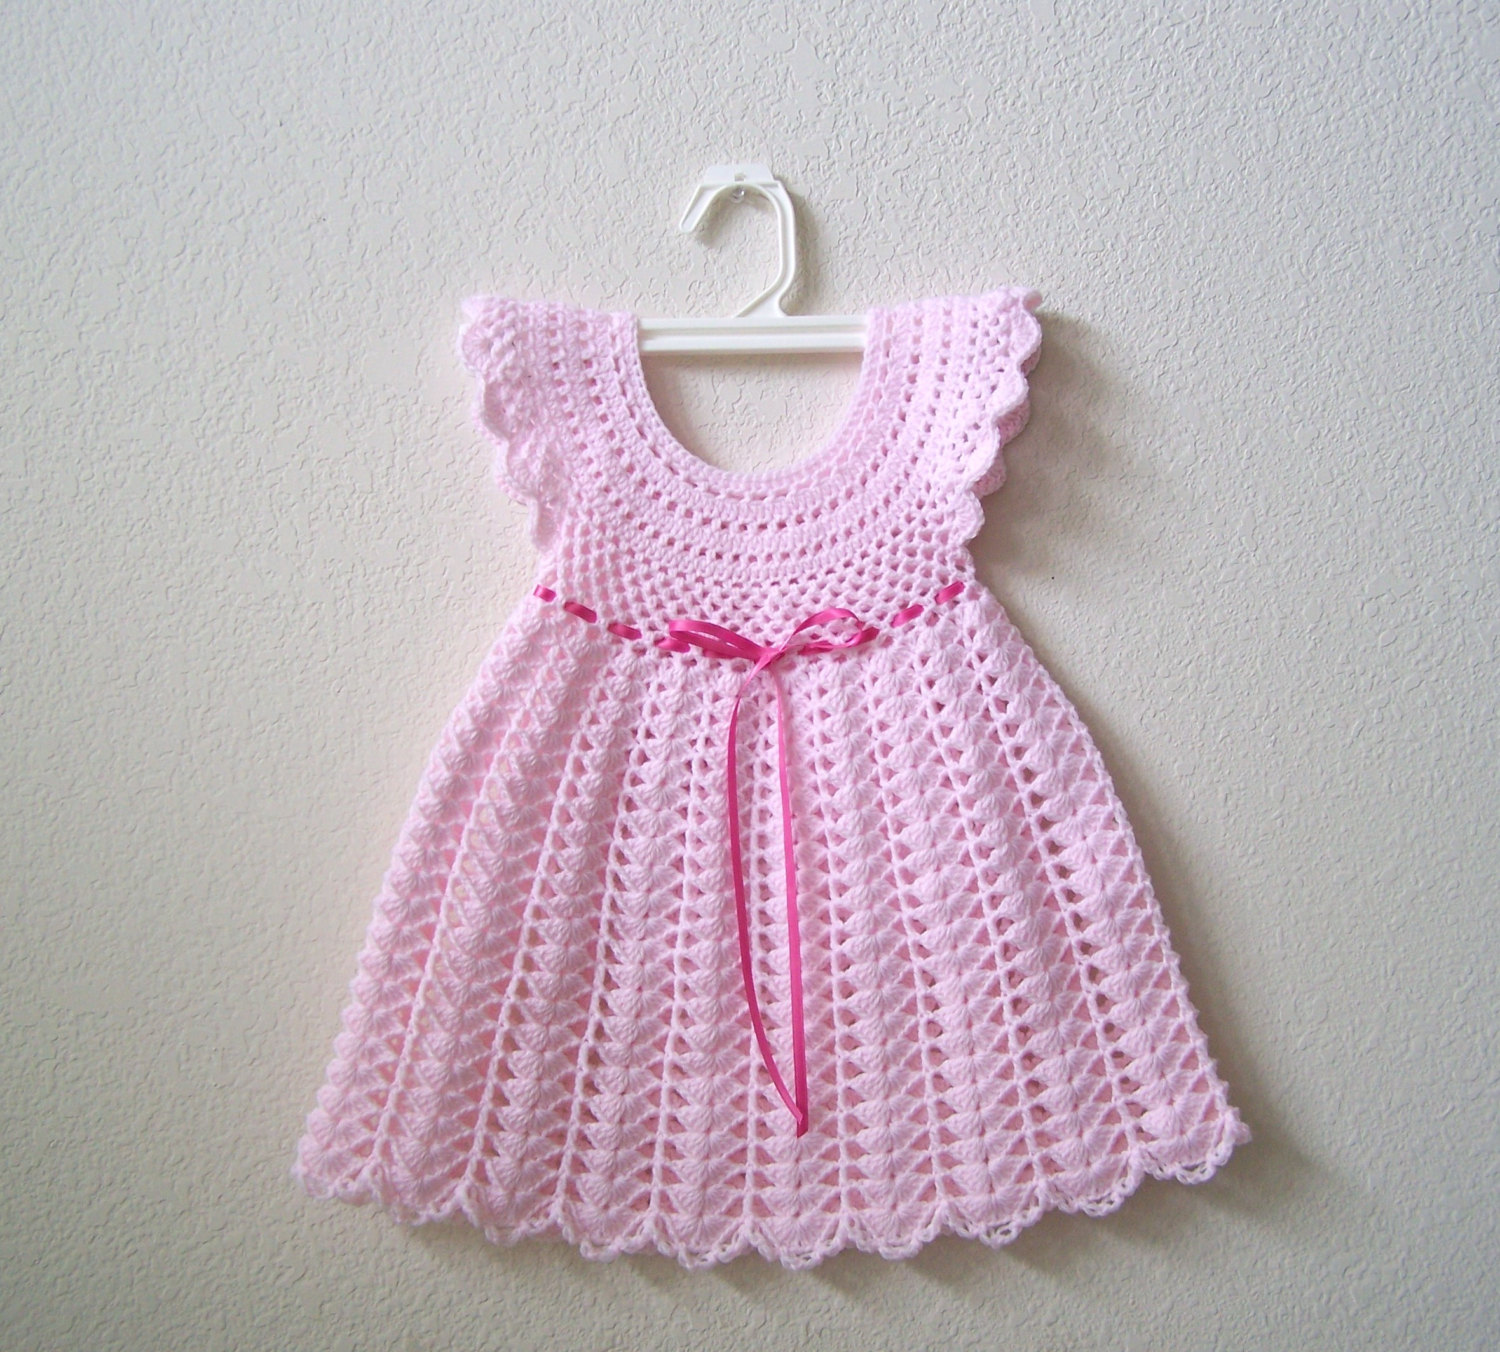 Handmade Baby Dress Handicrafts Of Pakistan